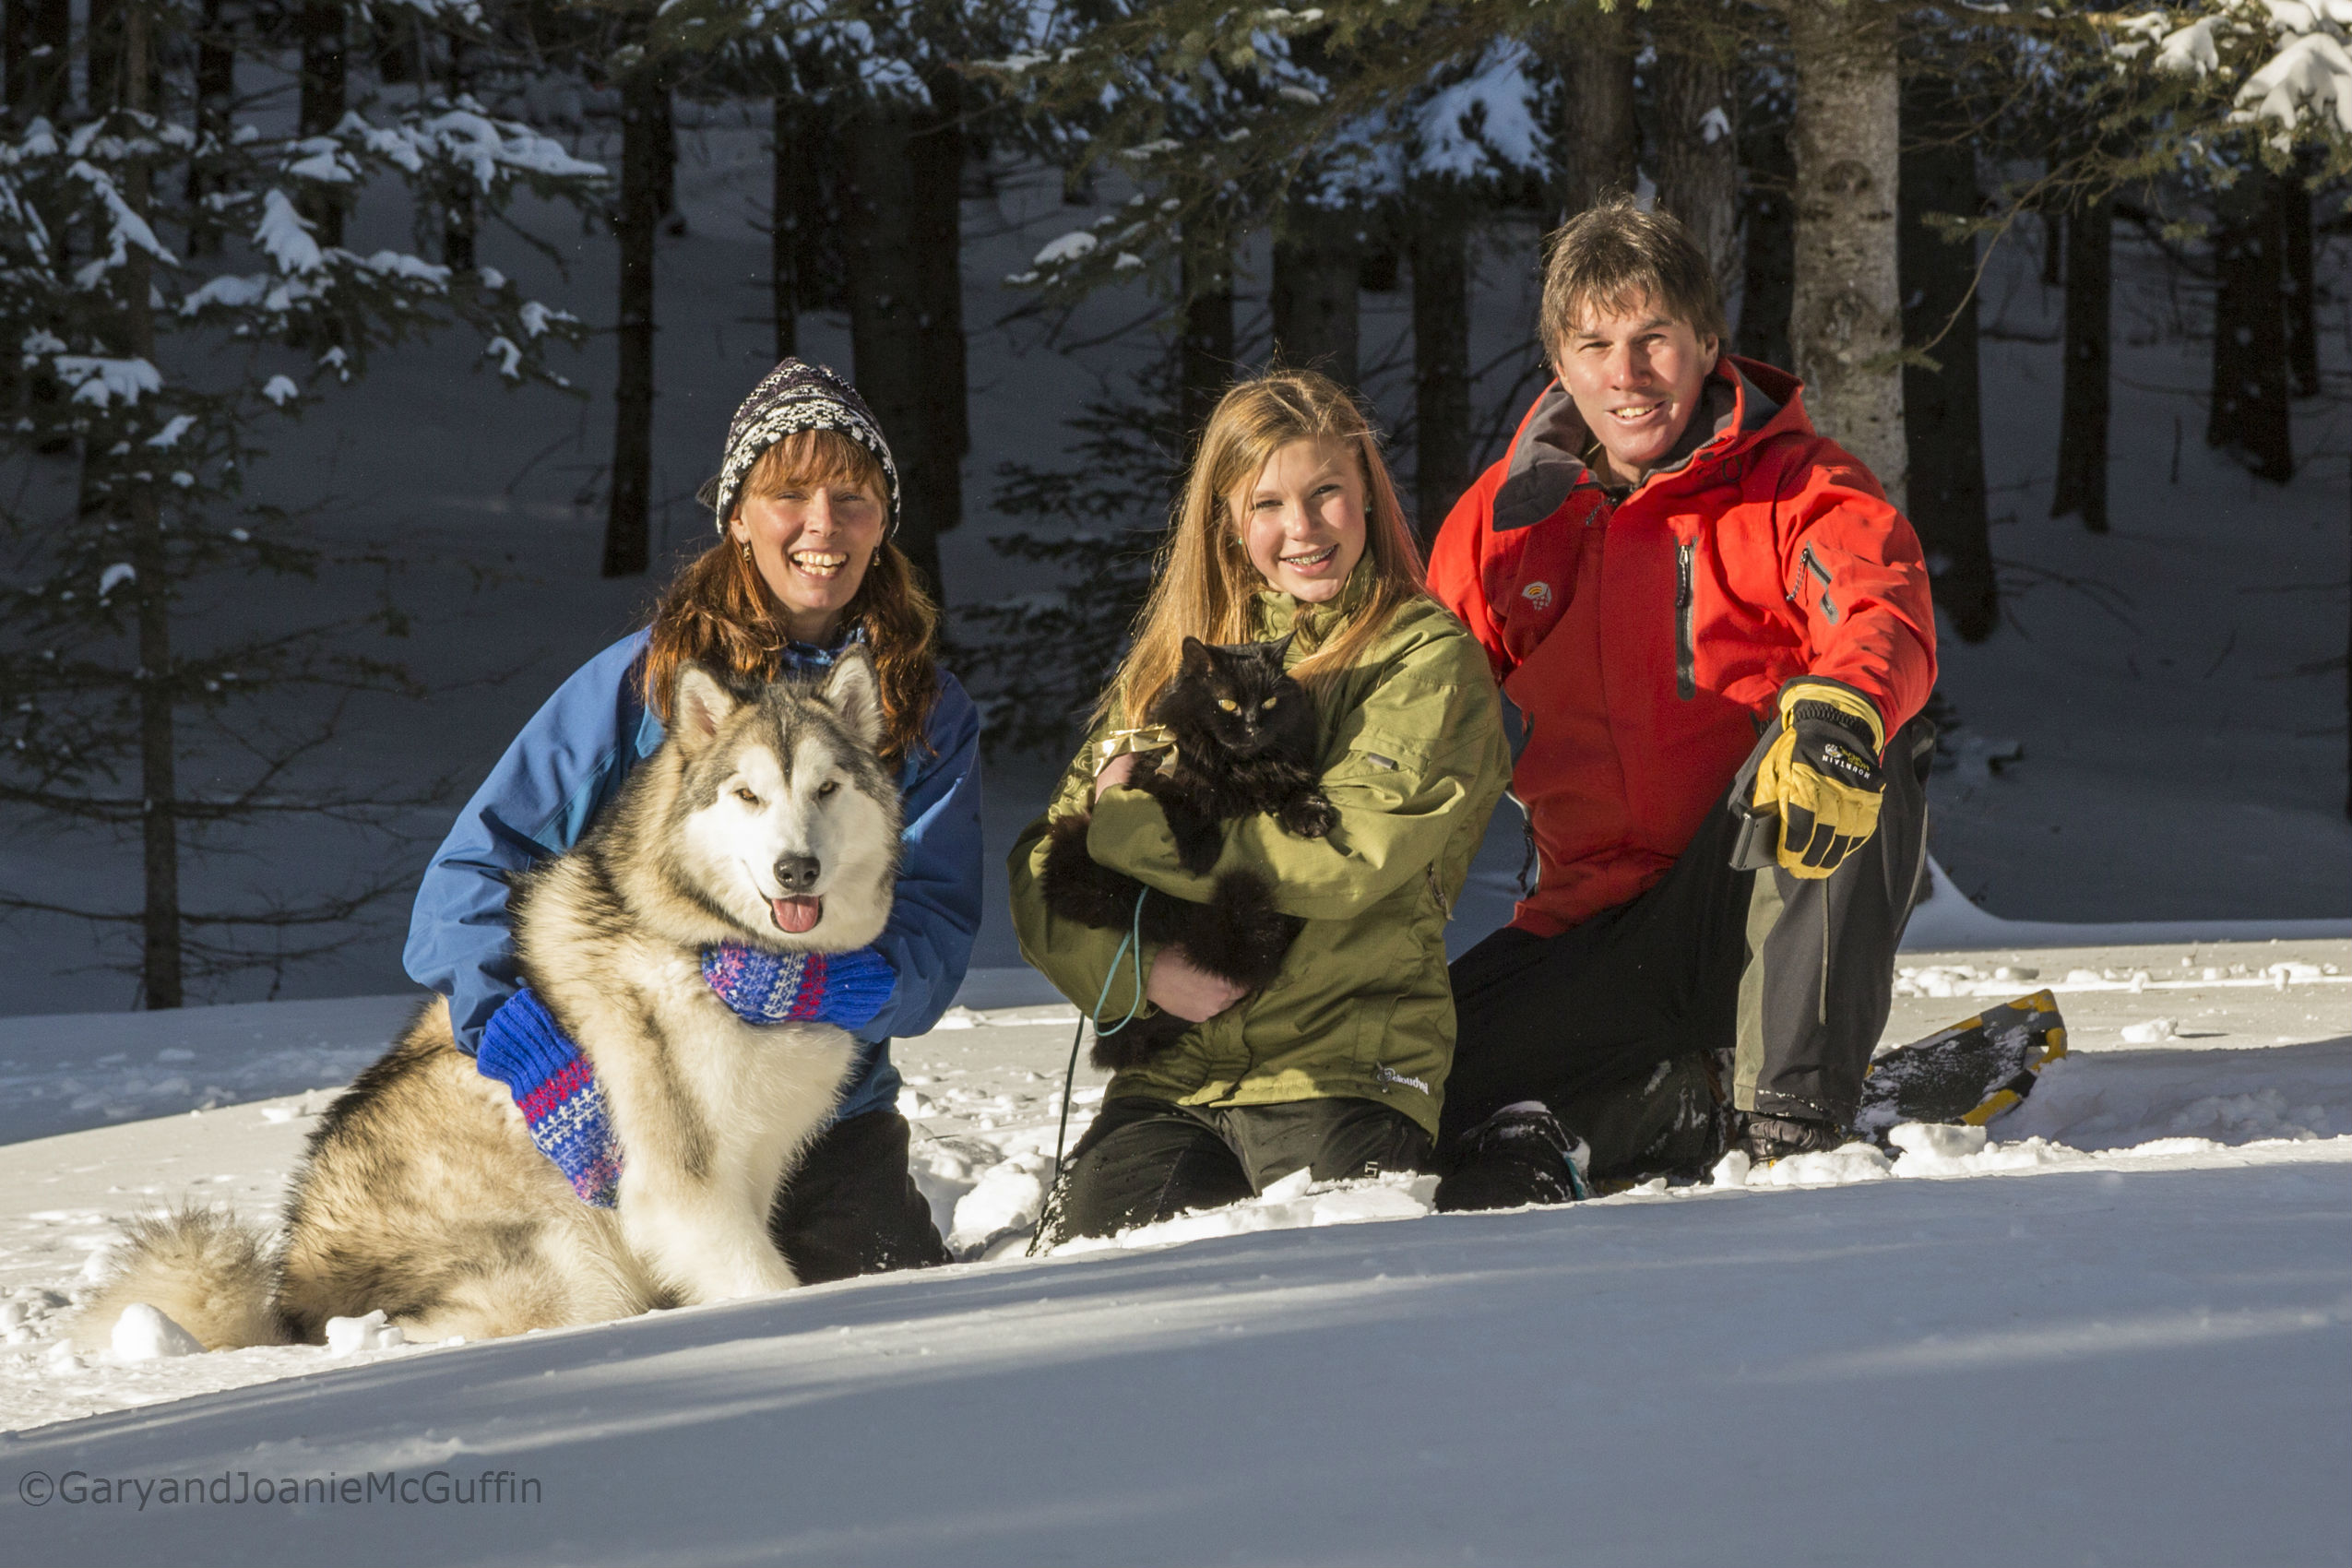 Winter family photo of two parents, daughter, a cat and a dog sitting in snow